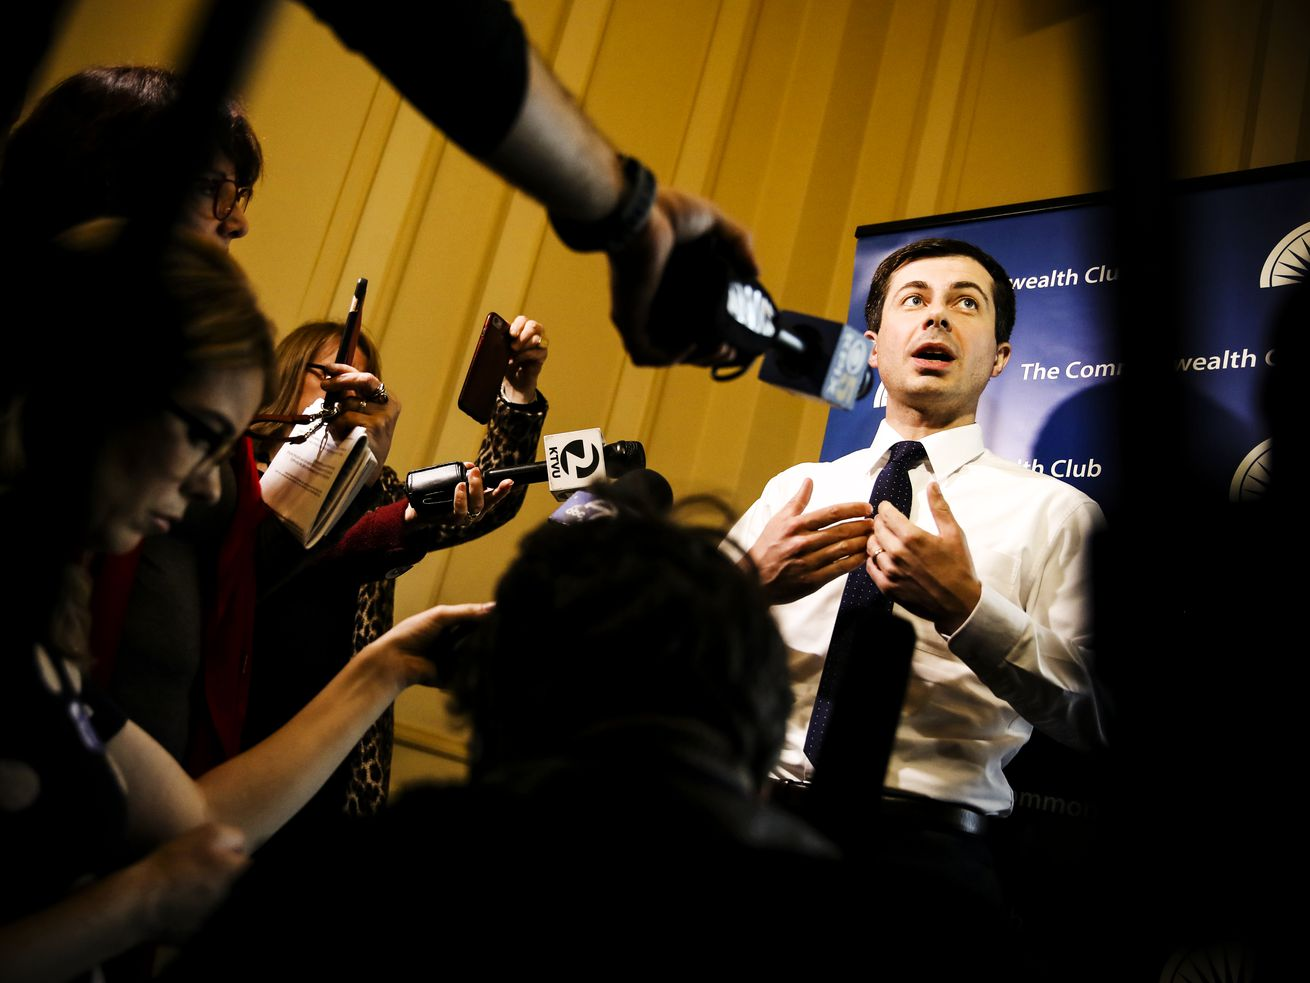 Democratic presidential hopeful and South Bend Mayor Pete Buttigieg speaking on March 28, 2019 in San Francisco, California.